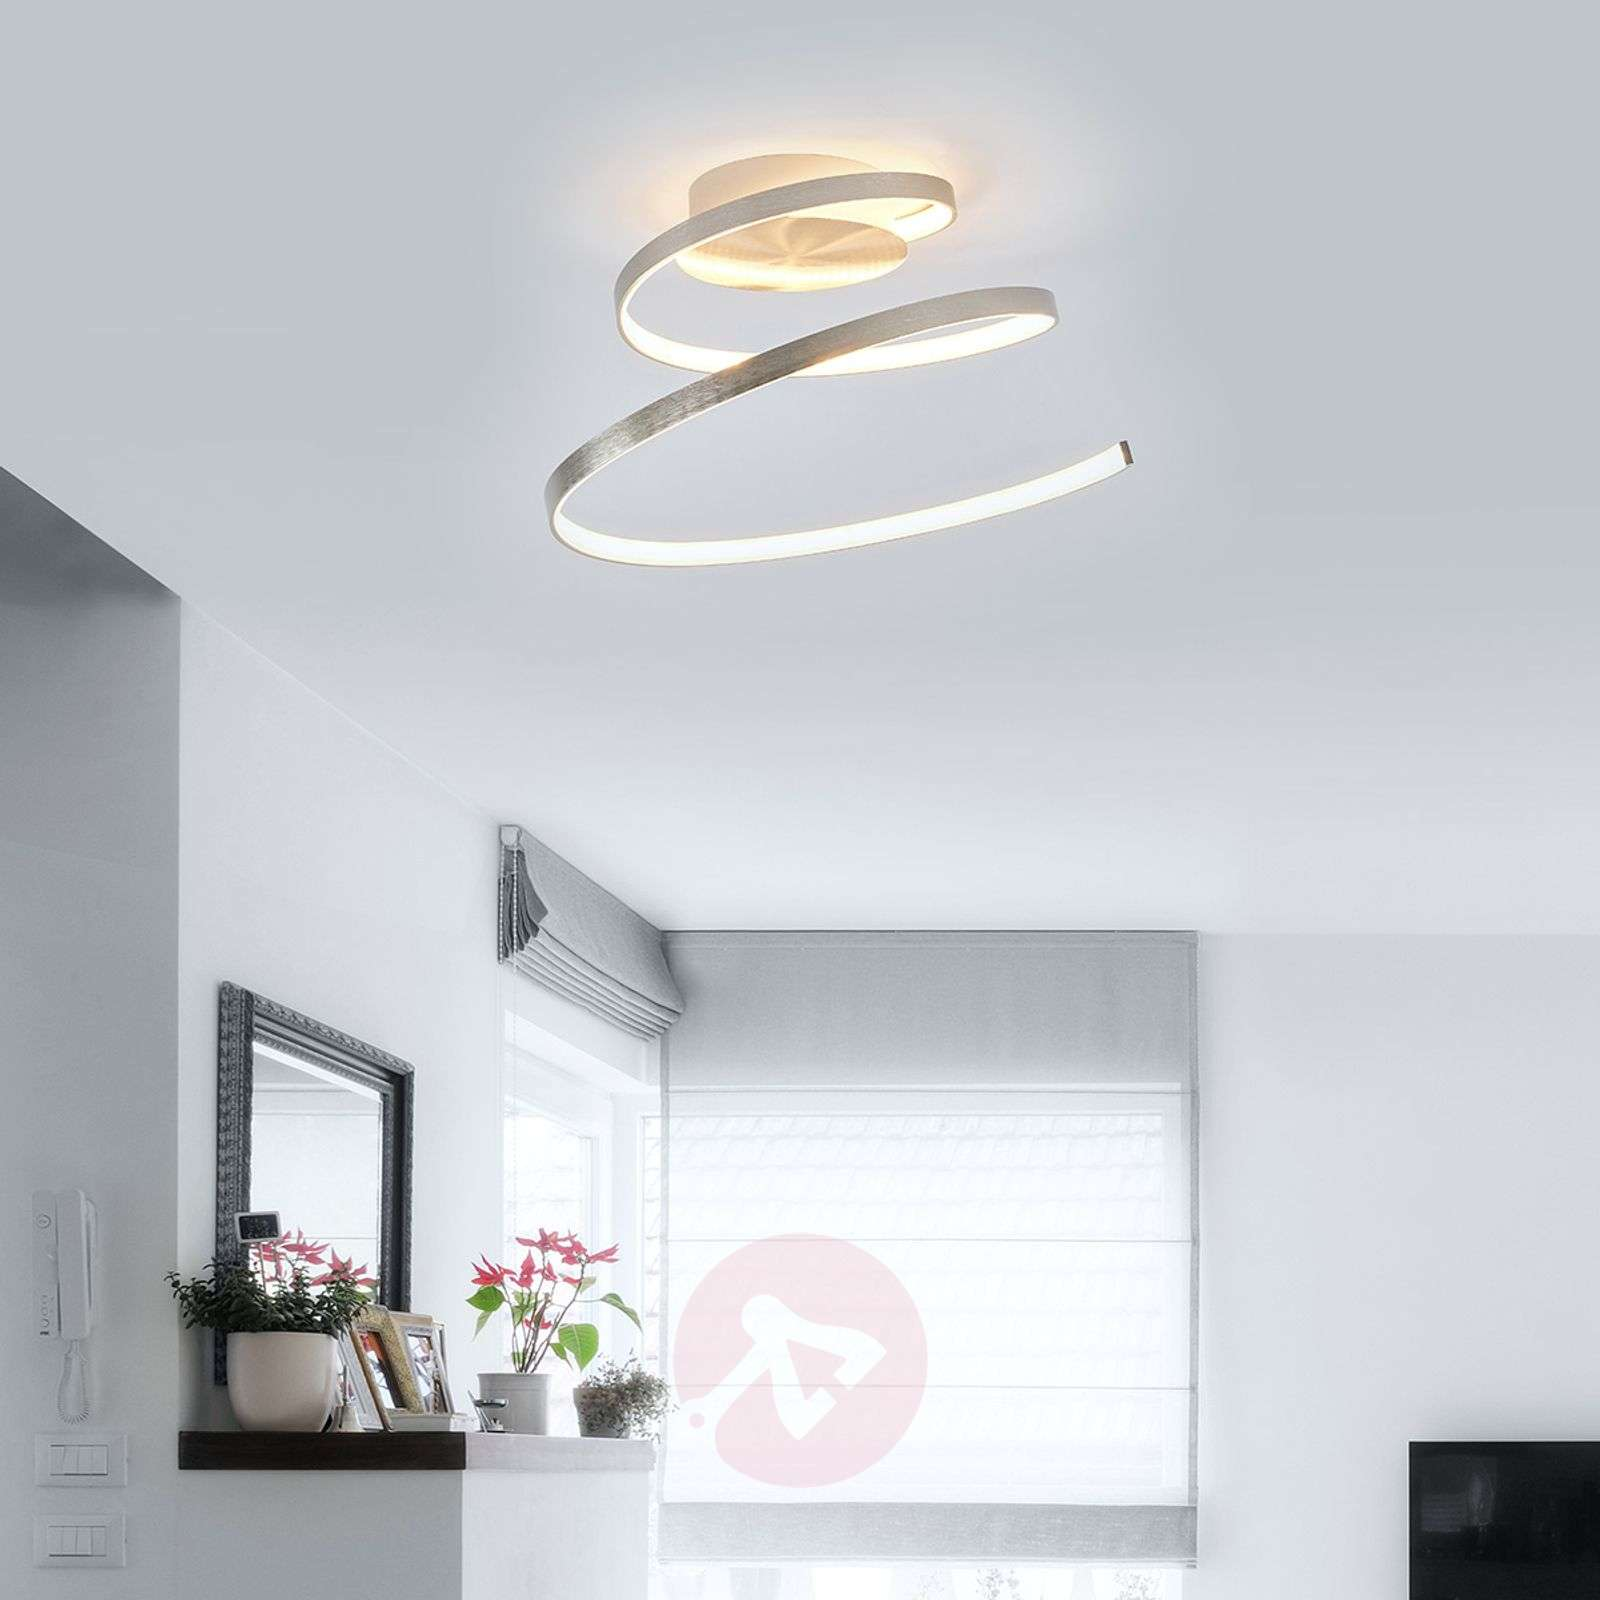 Junus spiral shaped led ceiling light lights junus spiral shaped led ceiling light 9985038 01 aloadofball Choice Image